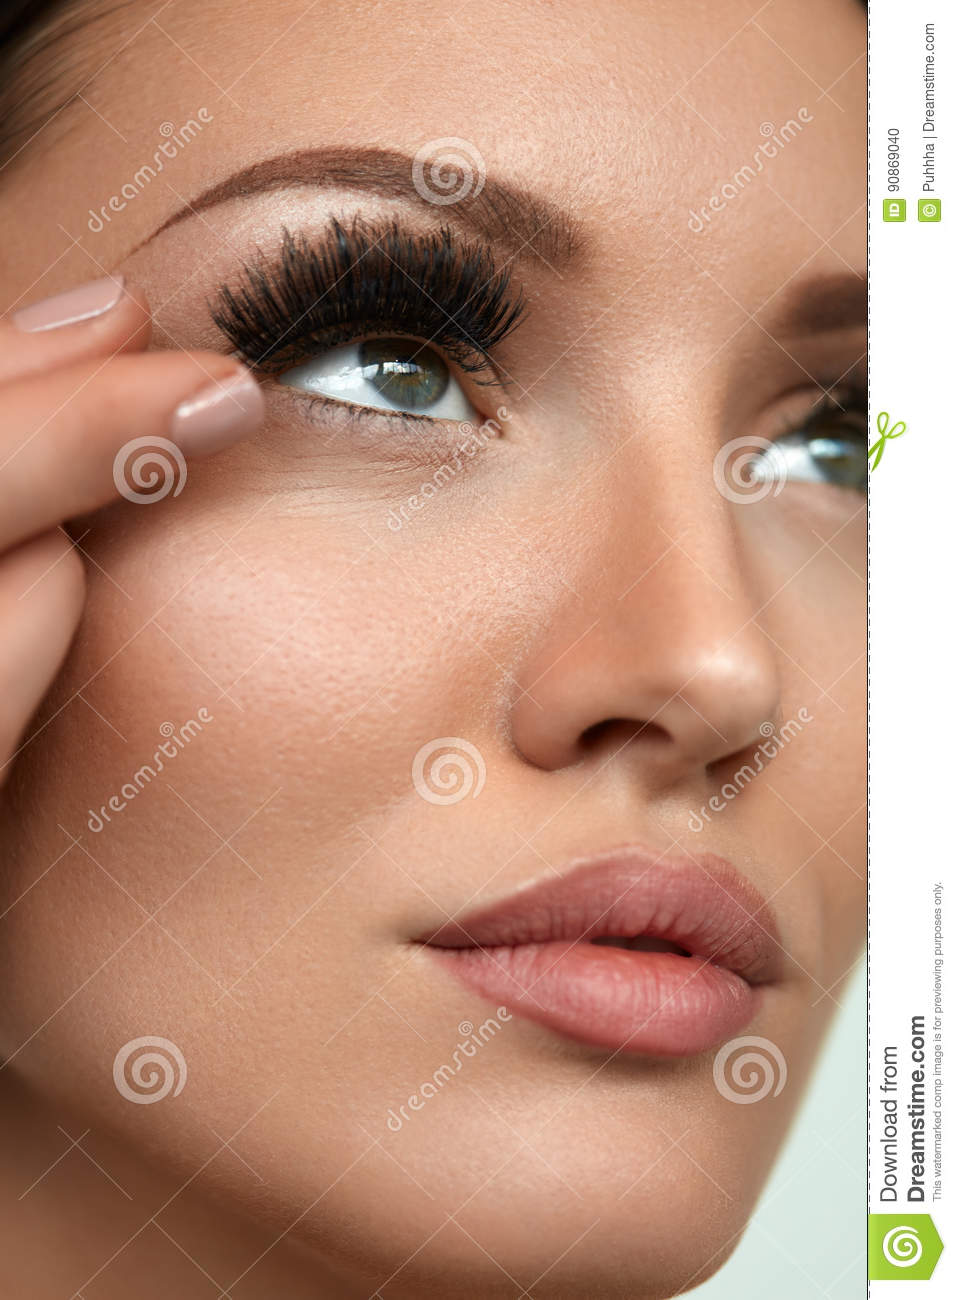 cb9531538d3 Applying False Eyelashes. Long Fake Lashes On Young Woman Eye. Closeup Of Beautiful  Female Model Face With Perfect Smooth Skin And Professional Natural ...